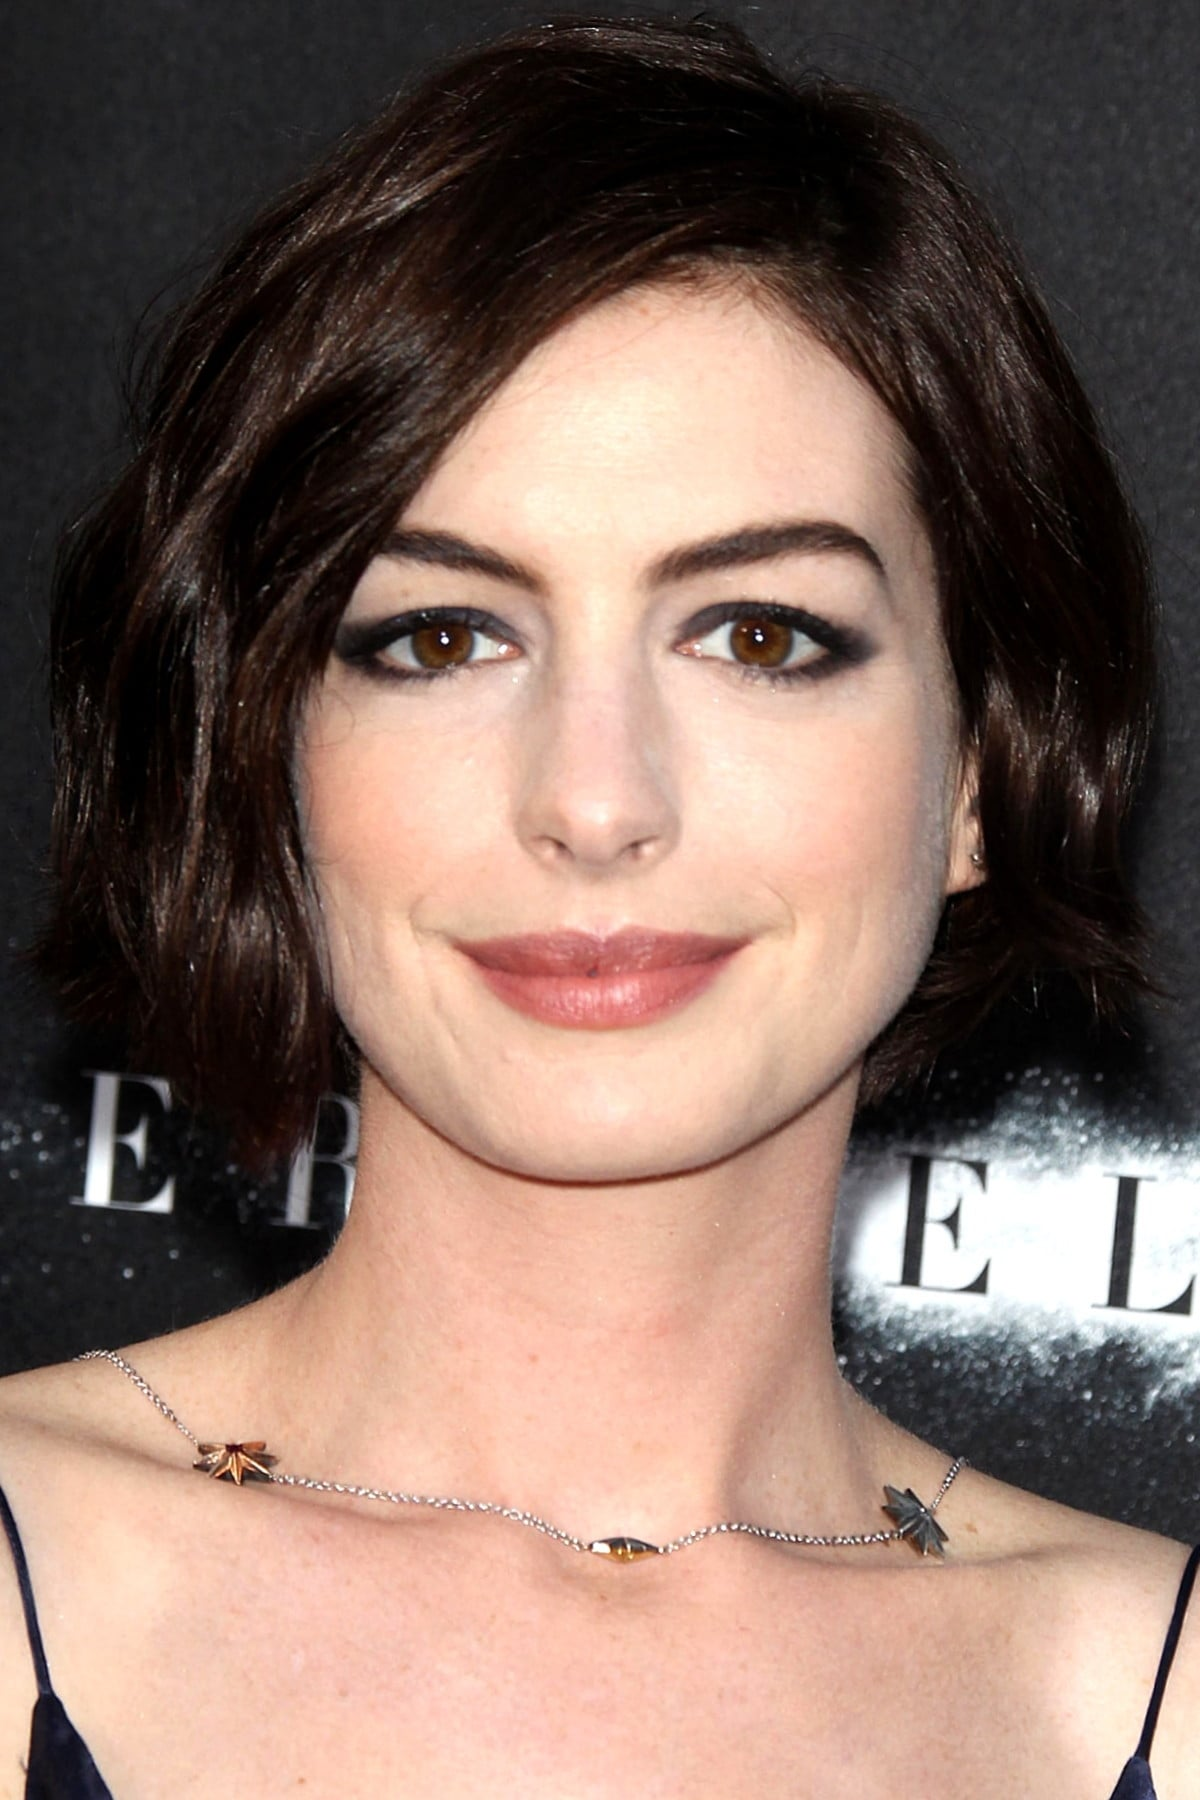 Anne Hathaway born November 12, 1982 (age 35) naked (72 pictures) Topless, Snapchat, legs